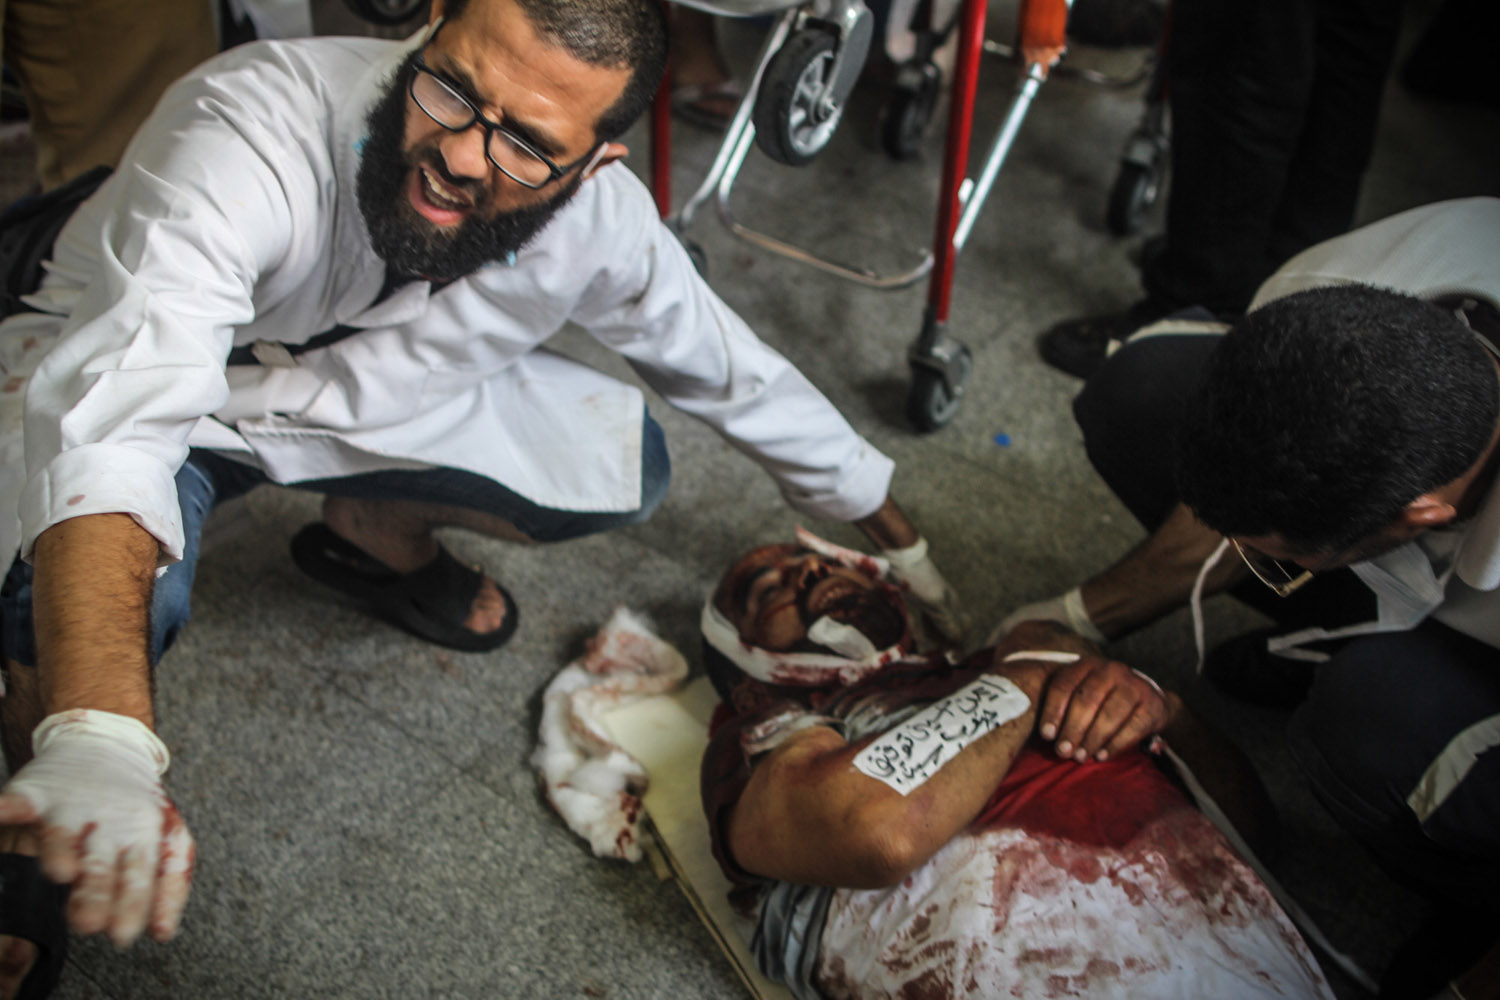 A doctor reacts as a victim arrives at the makeshift hospital.